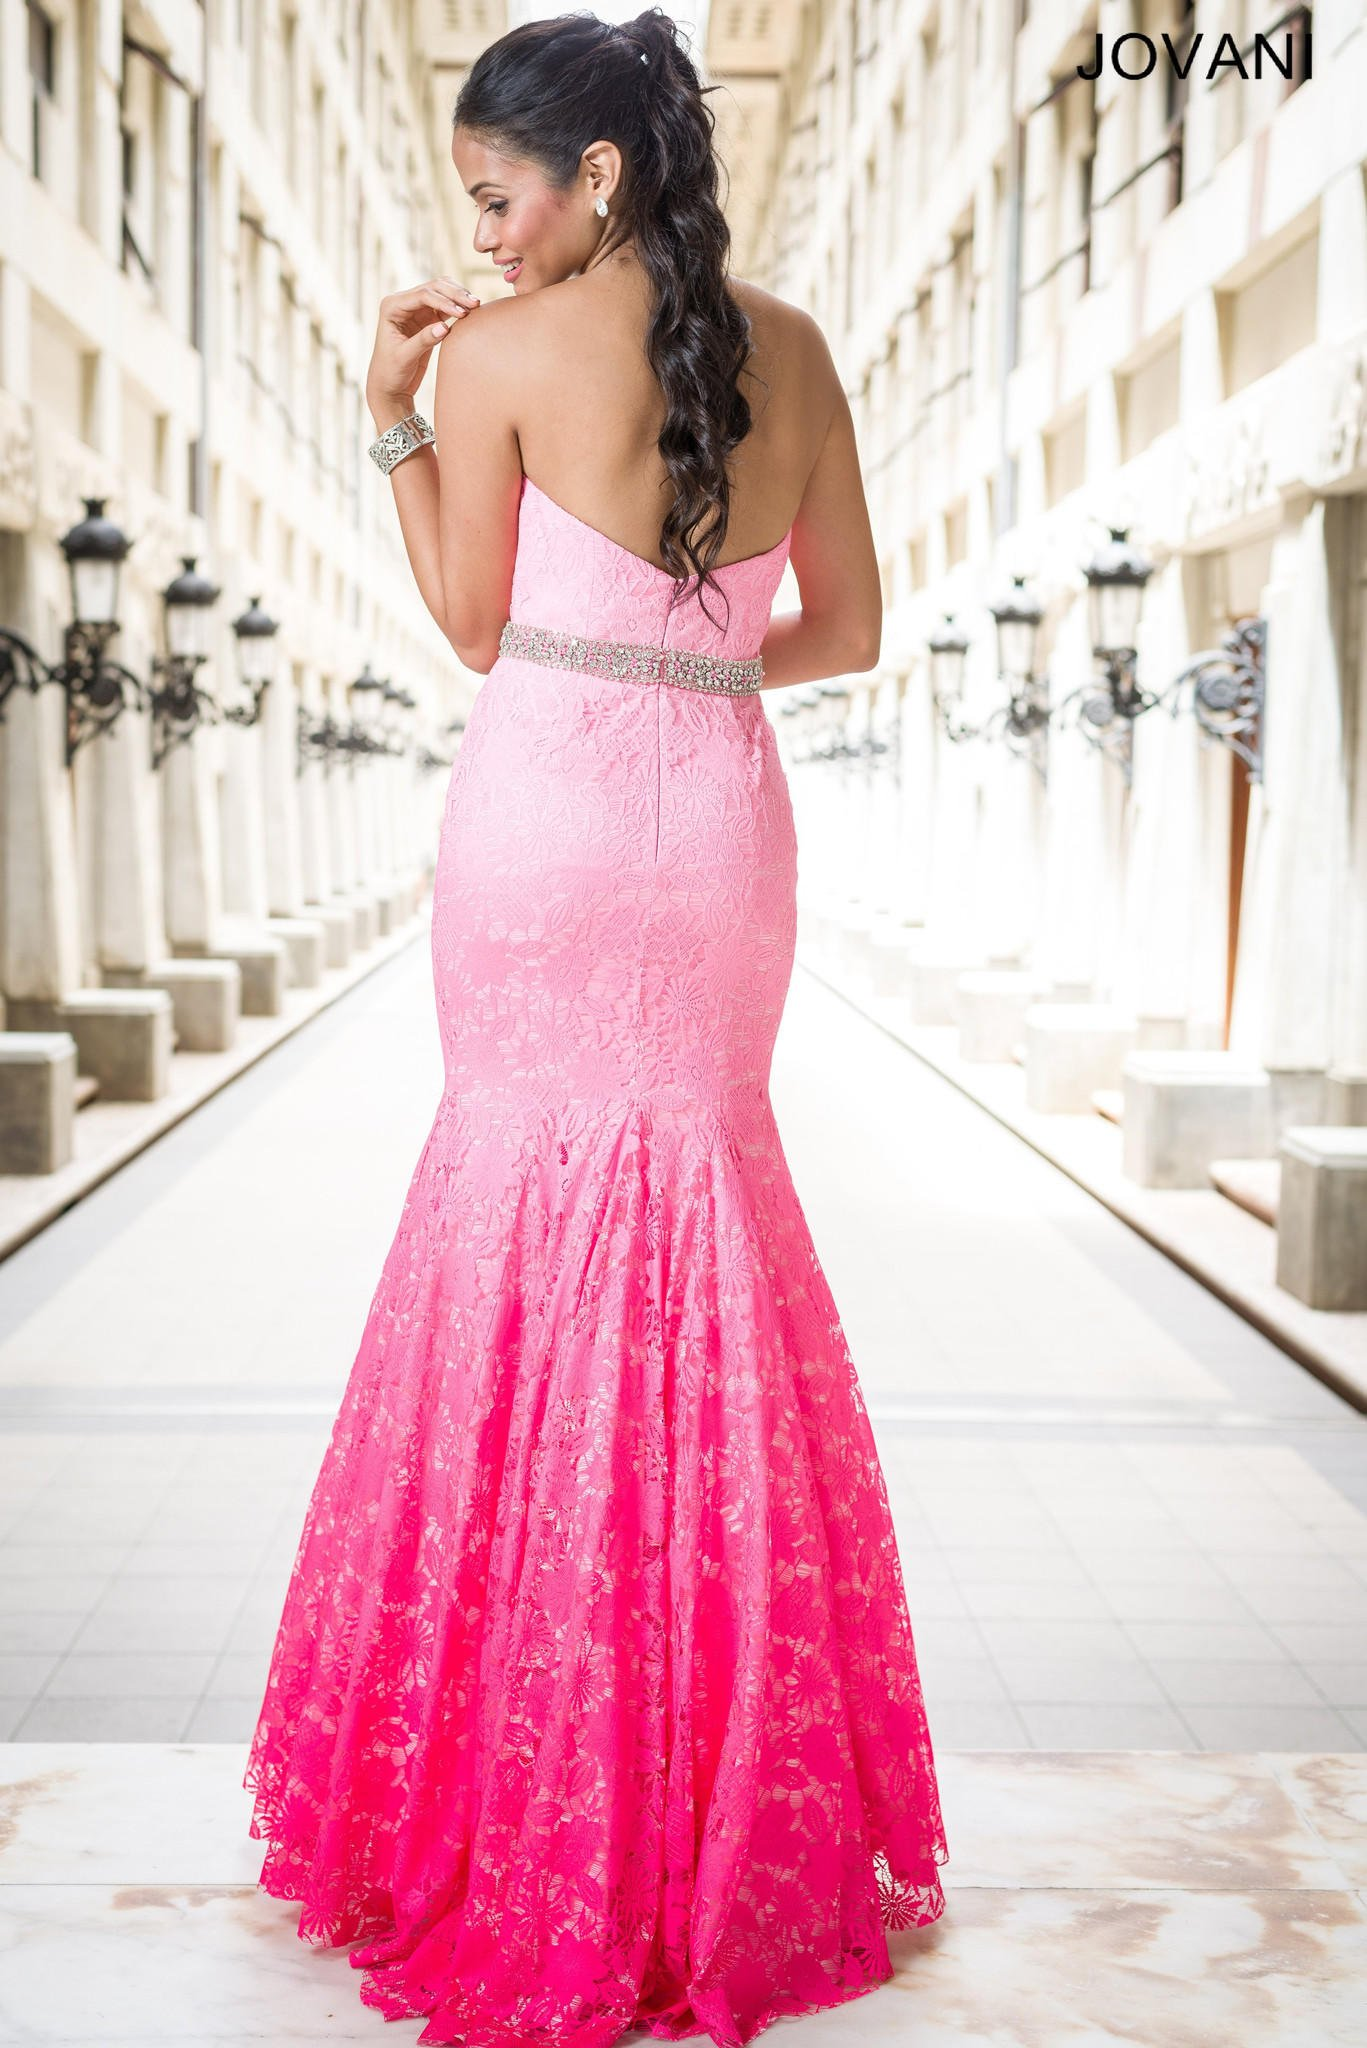 Jovani 29126 In Stock Pink Ombre Size 12 from myprimabella | In